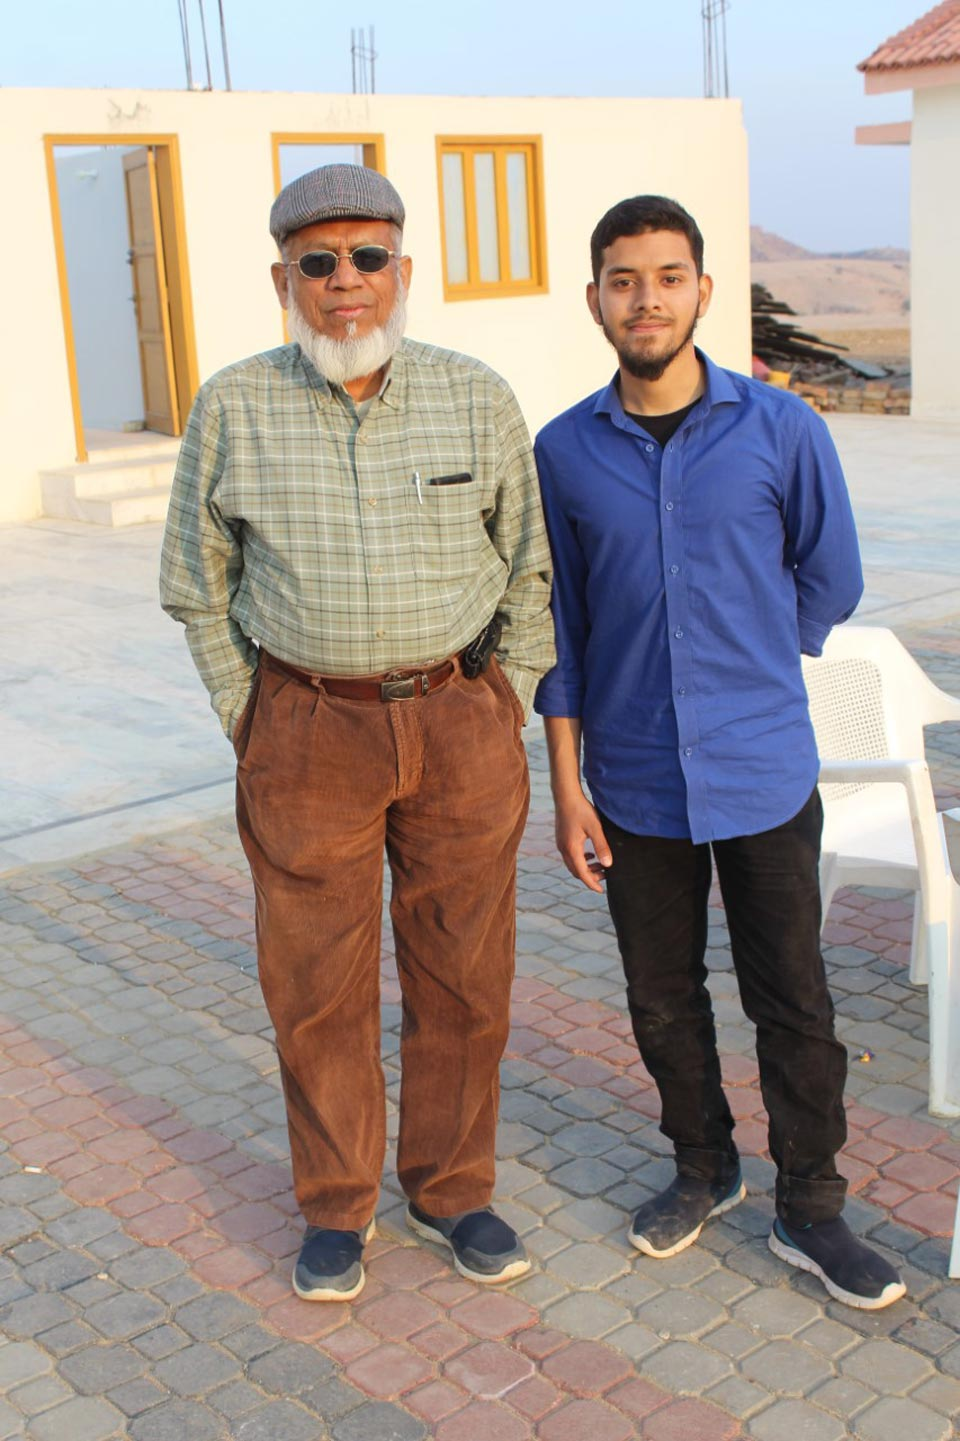 Engr. Iqbal Ahmed Khan and Engr. Obaid Ur Rehman at the Rani Kot Restaurant after the completion of trekking